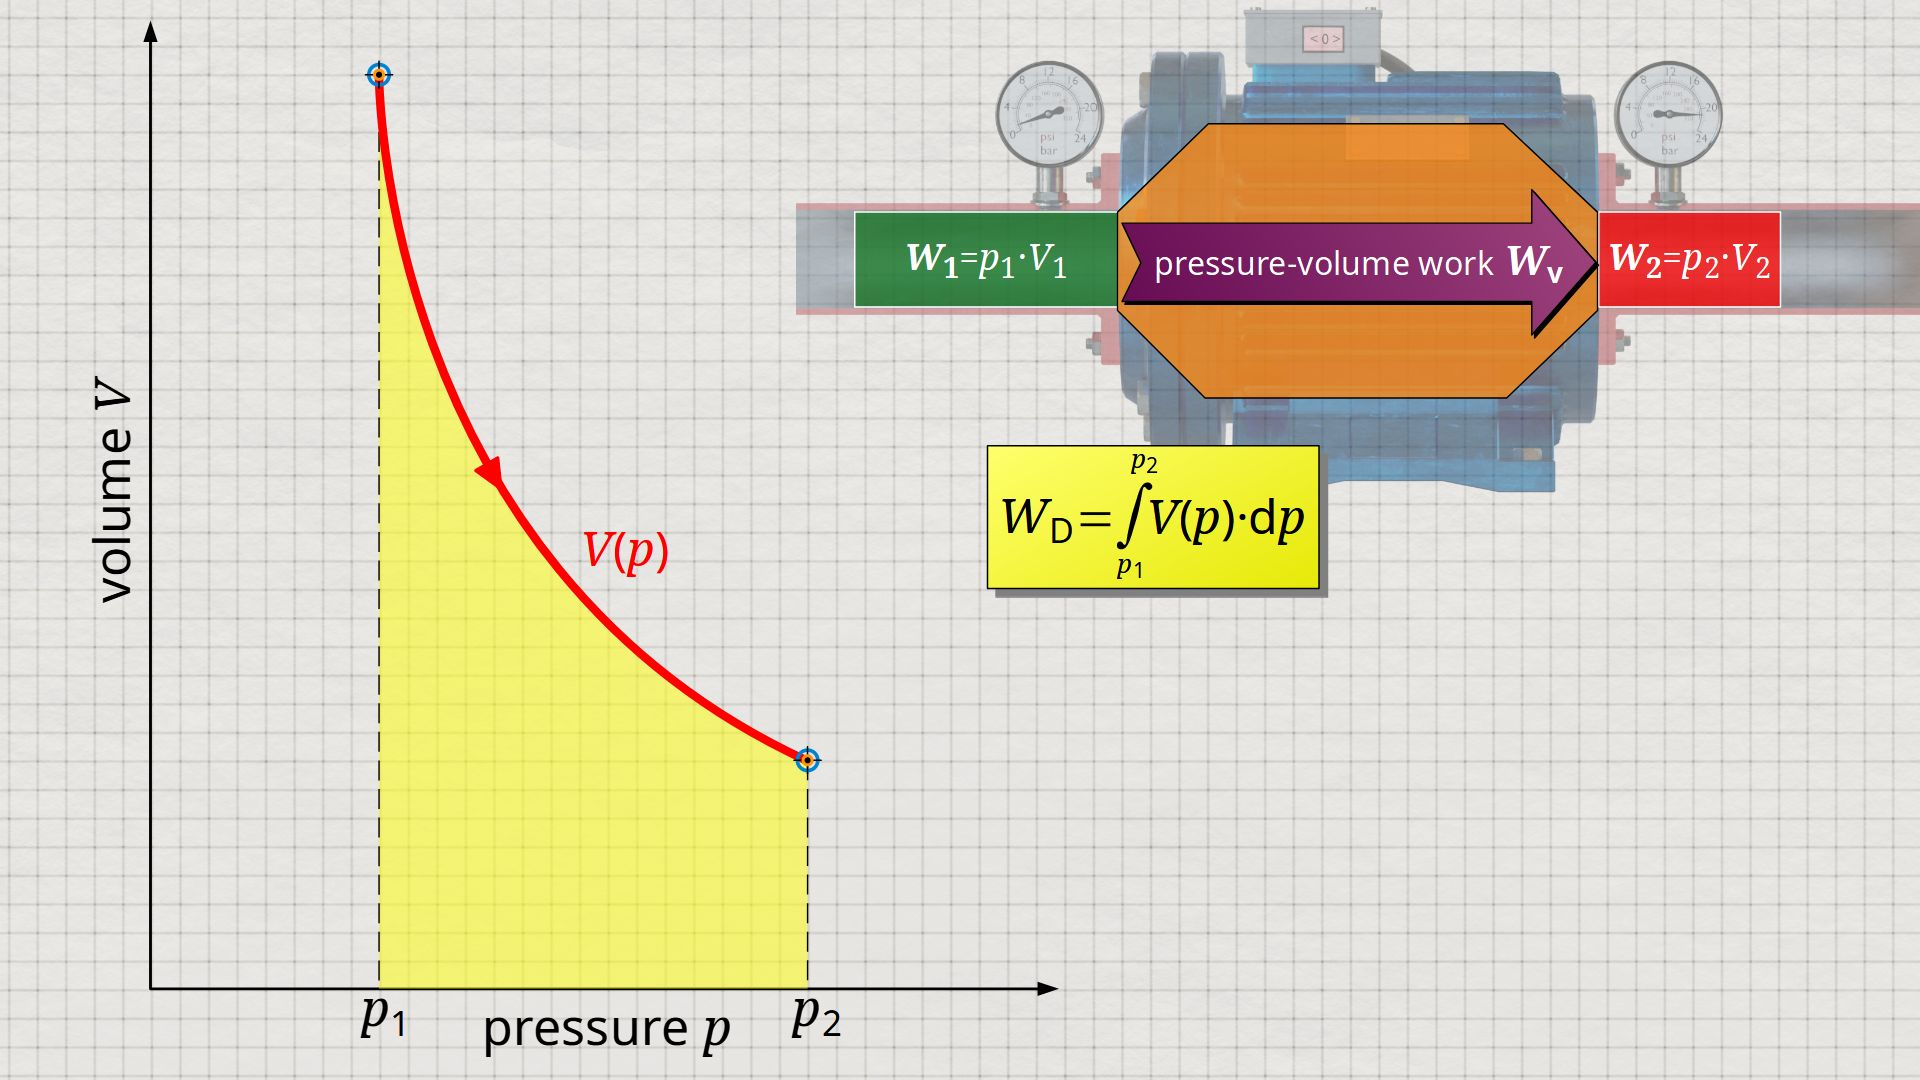 Flow process work as integral of the V(p) function (∫V⋅dp)